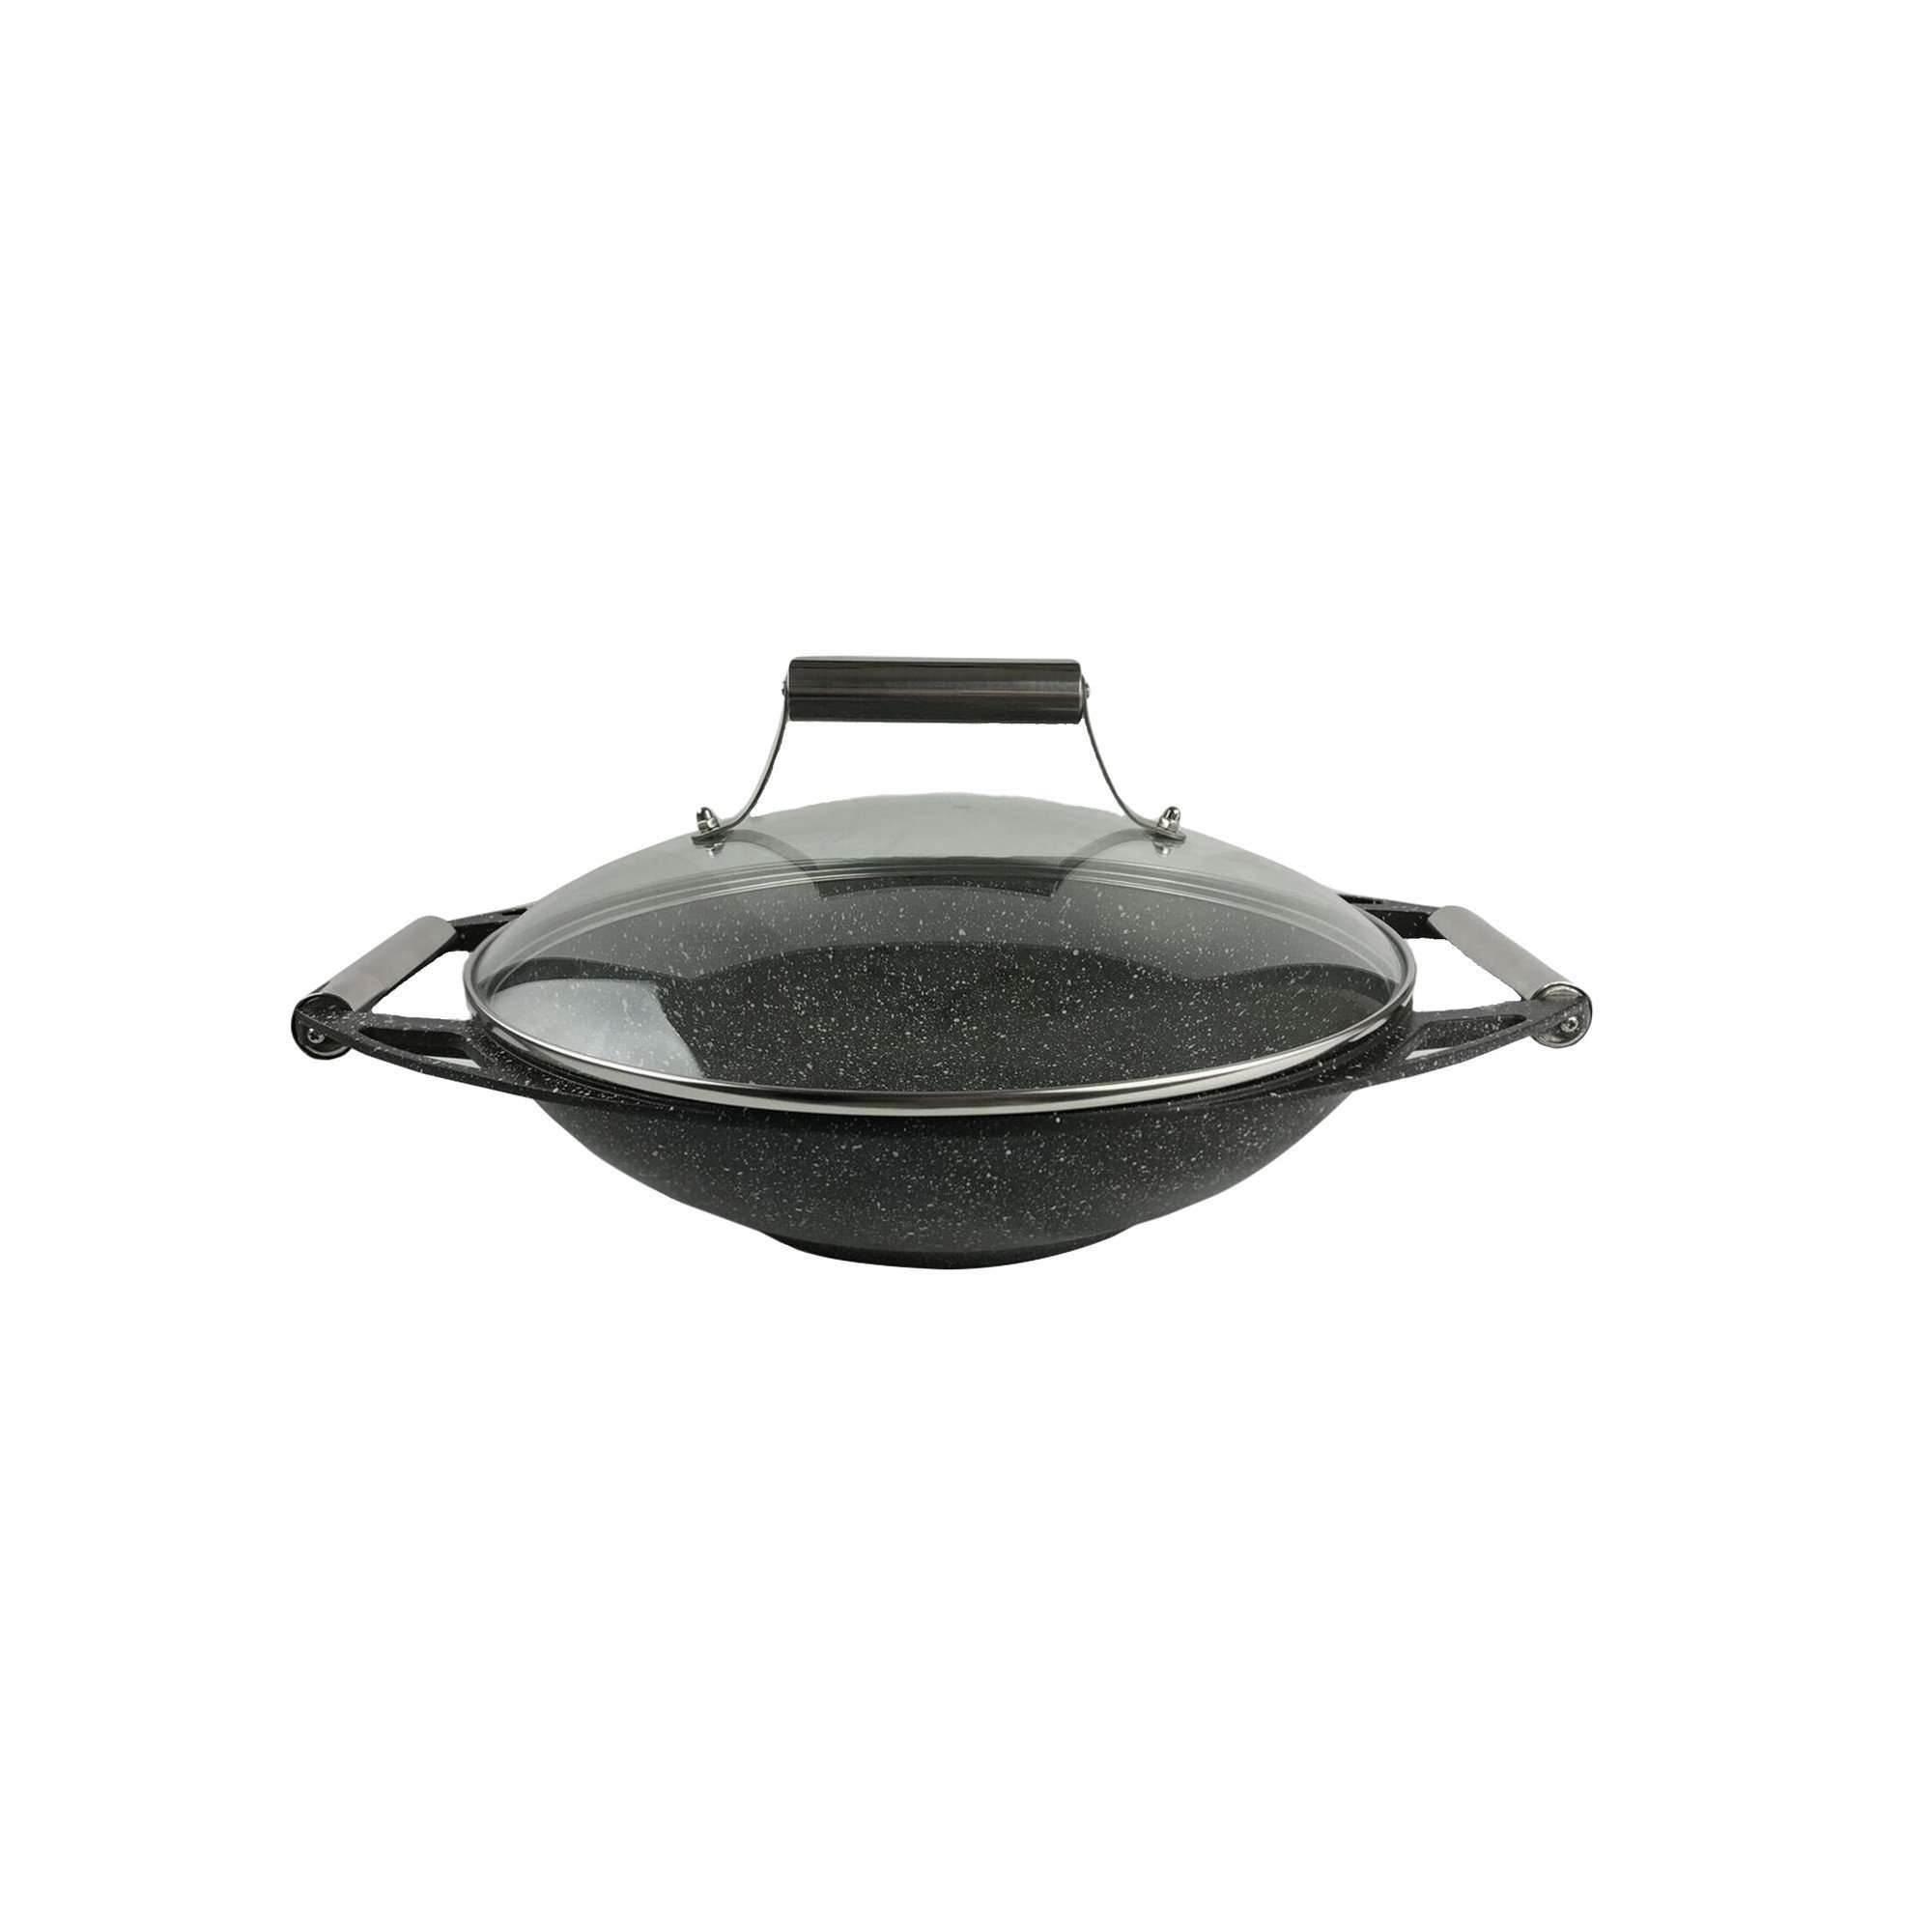 "13.75"" (35 cm) Wok with Glass Lid and Stainless Steel Knob and Handles"